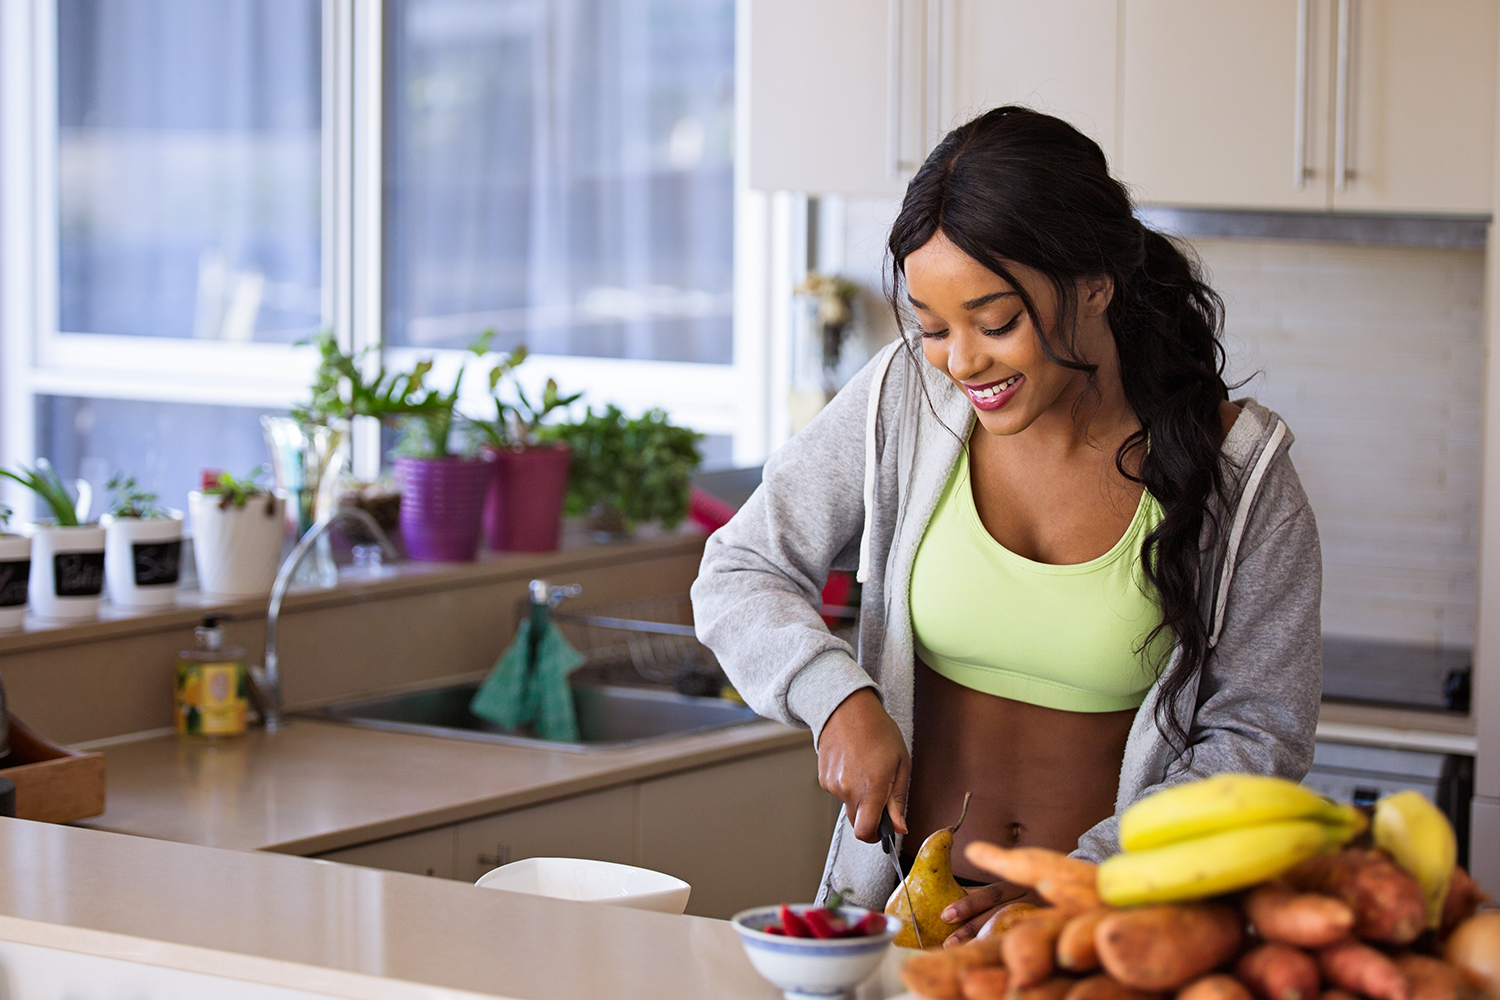 How To Get Healthy Even If Your Weight Is Spot On